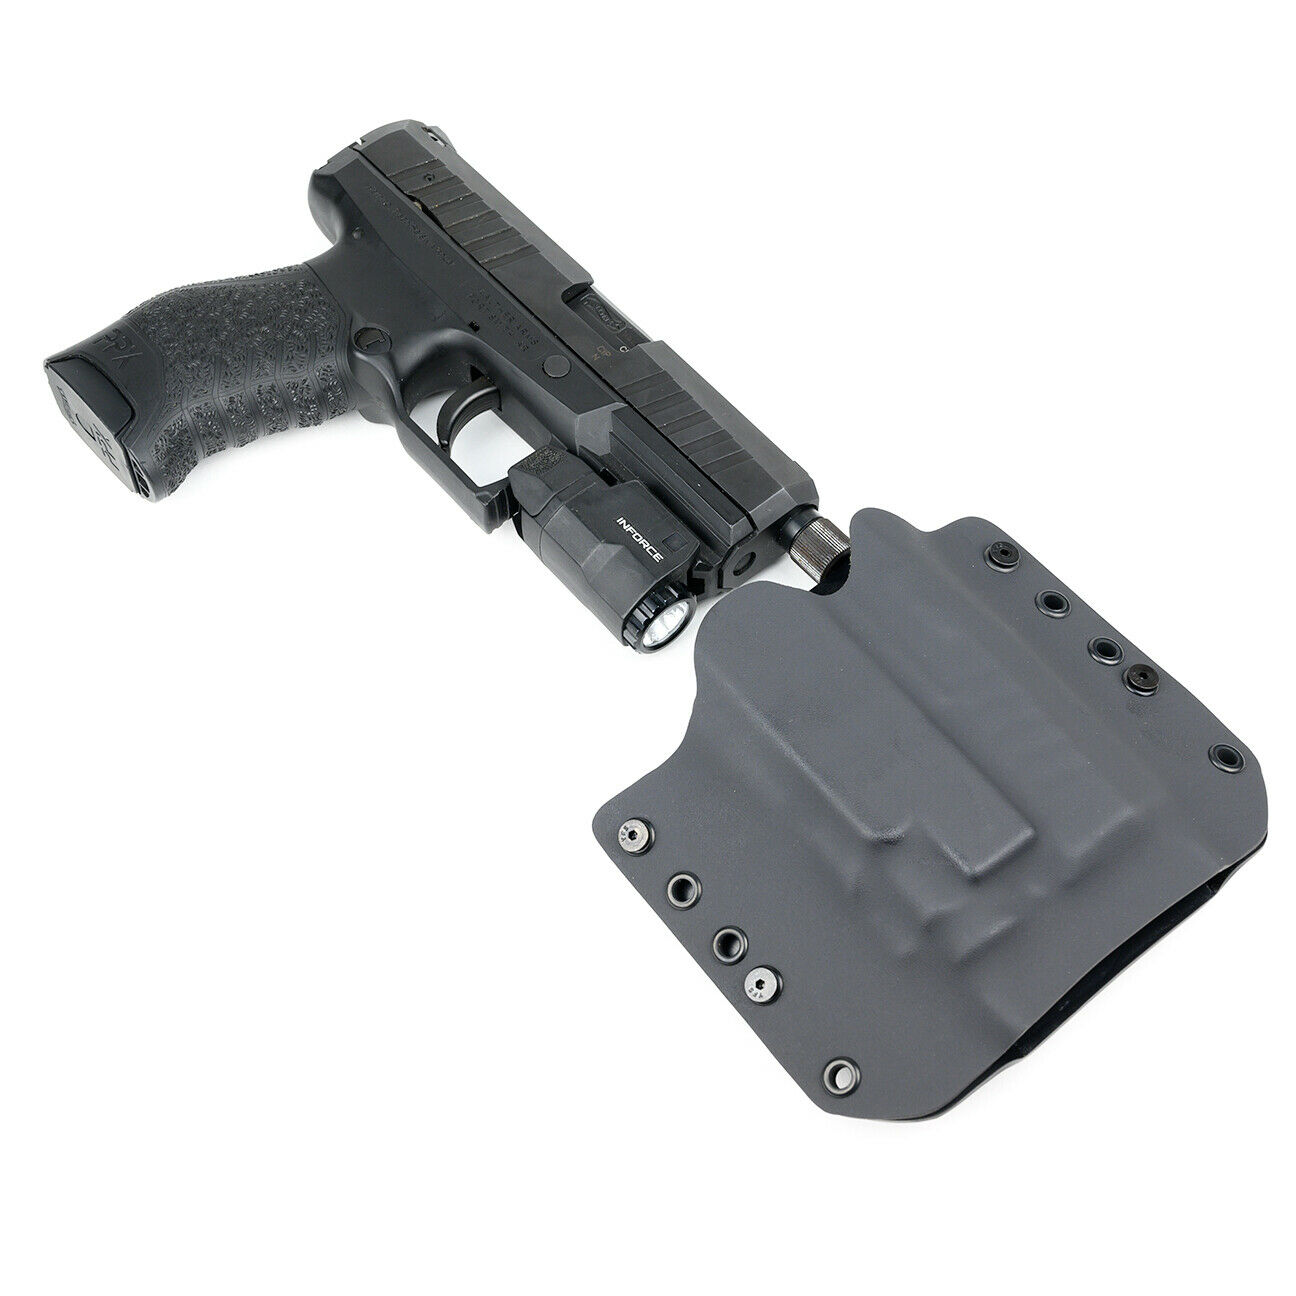 OWB Kydex Holster for Hanguns with INFORCE APLc - MATTE BLAC